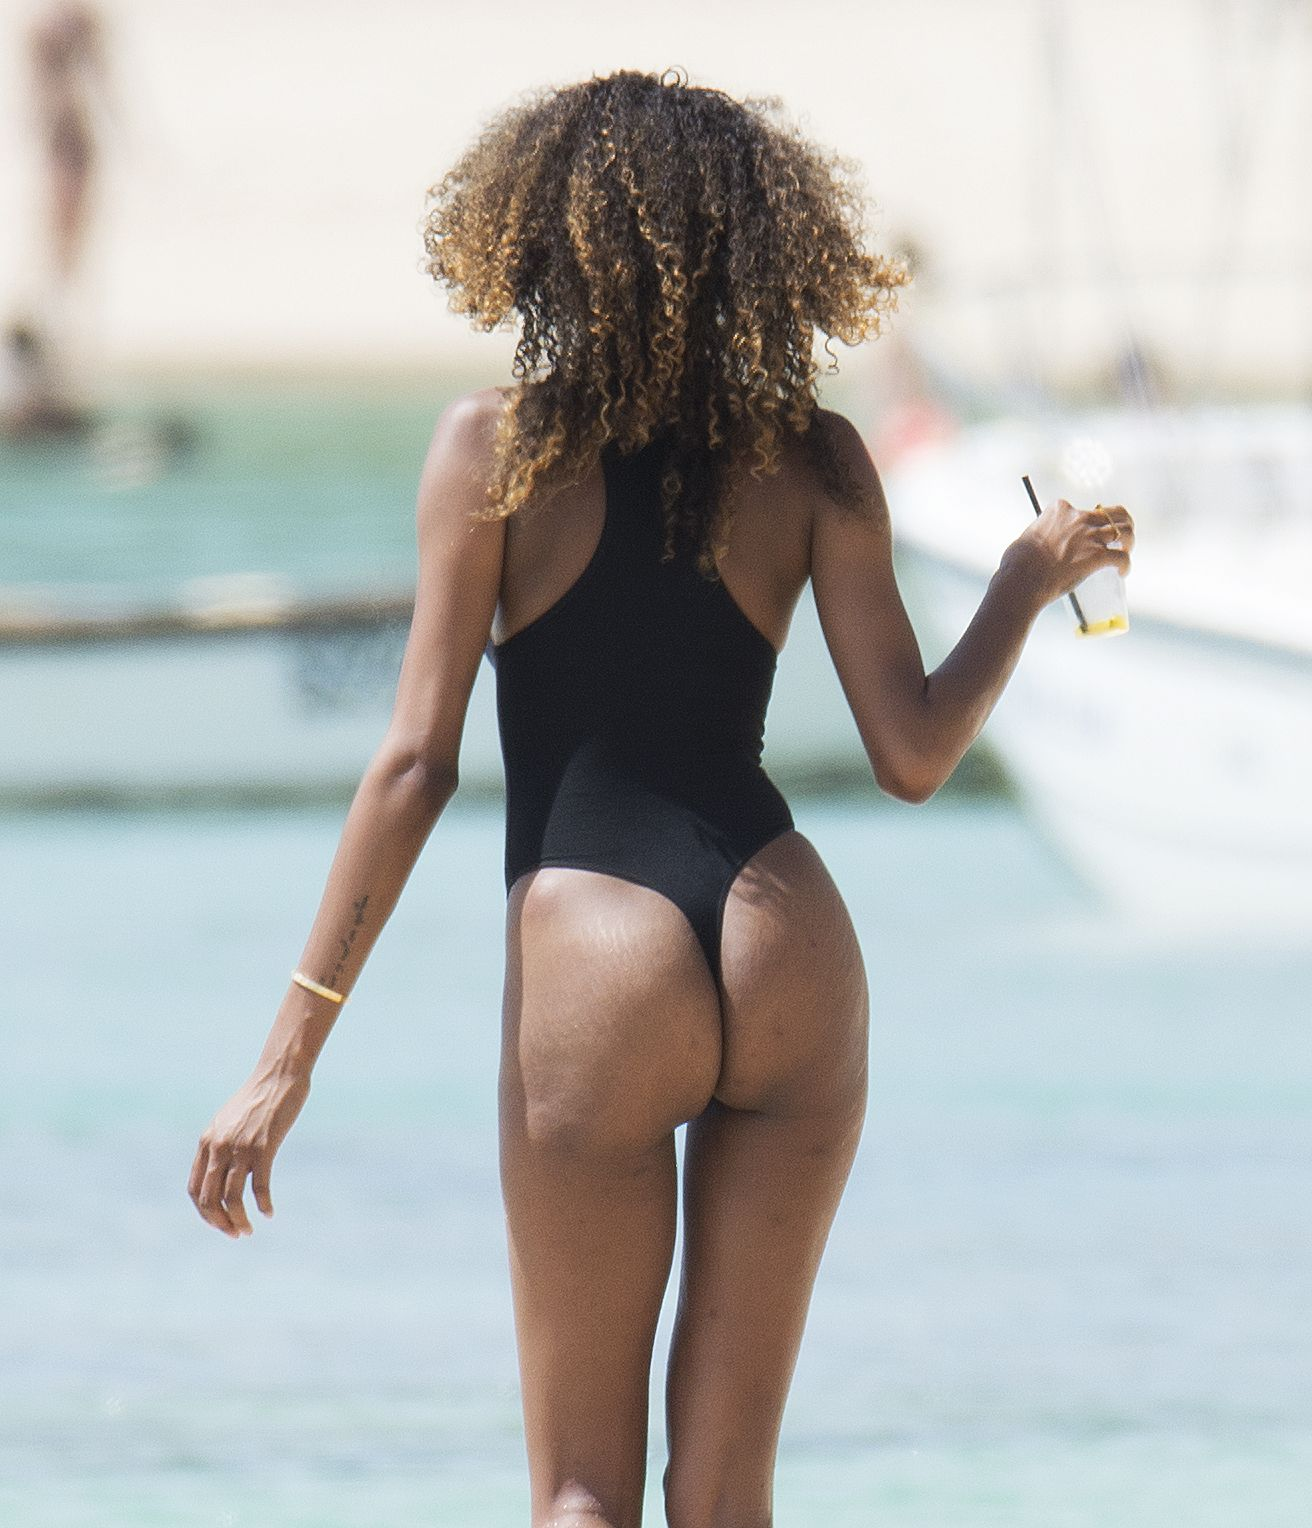 Jourdan Dunn Swimsuit Pic...